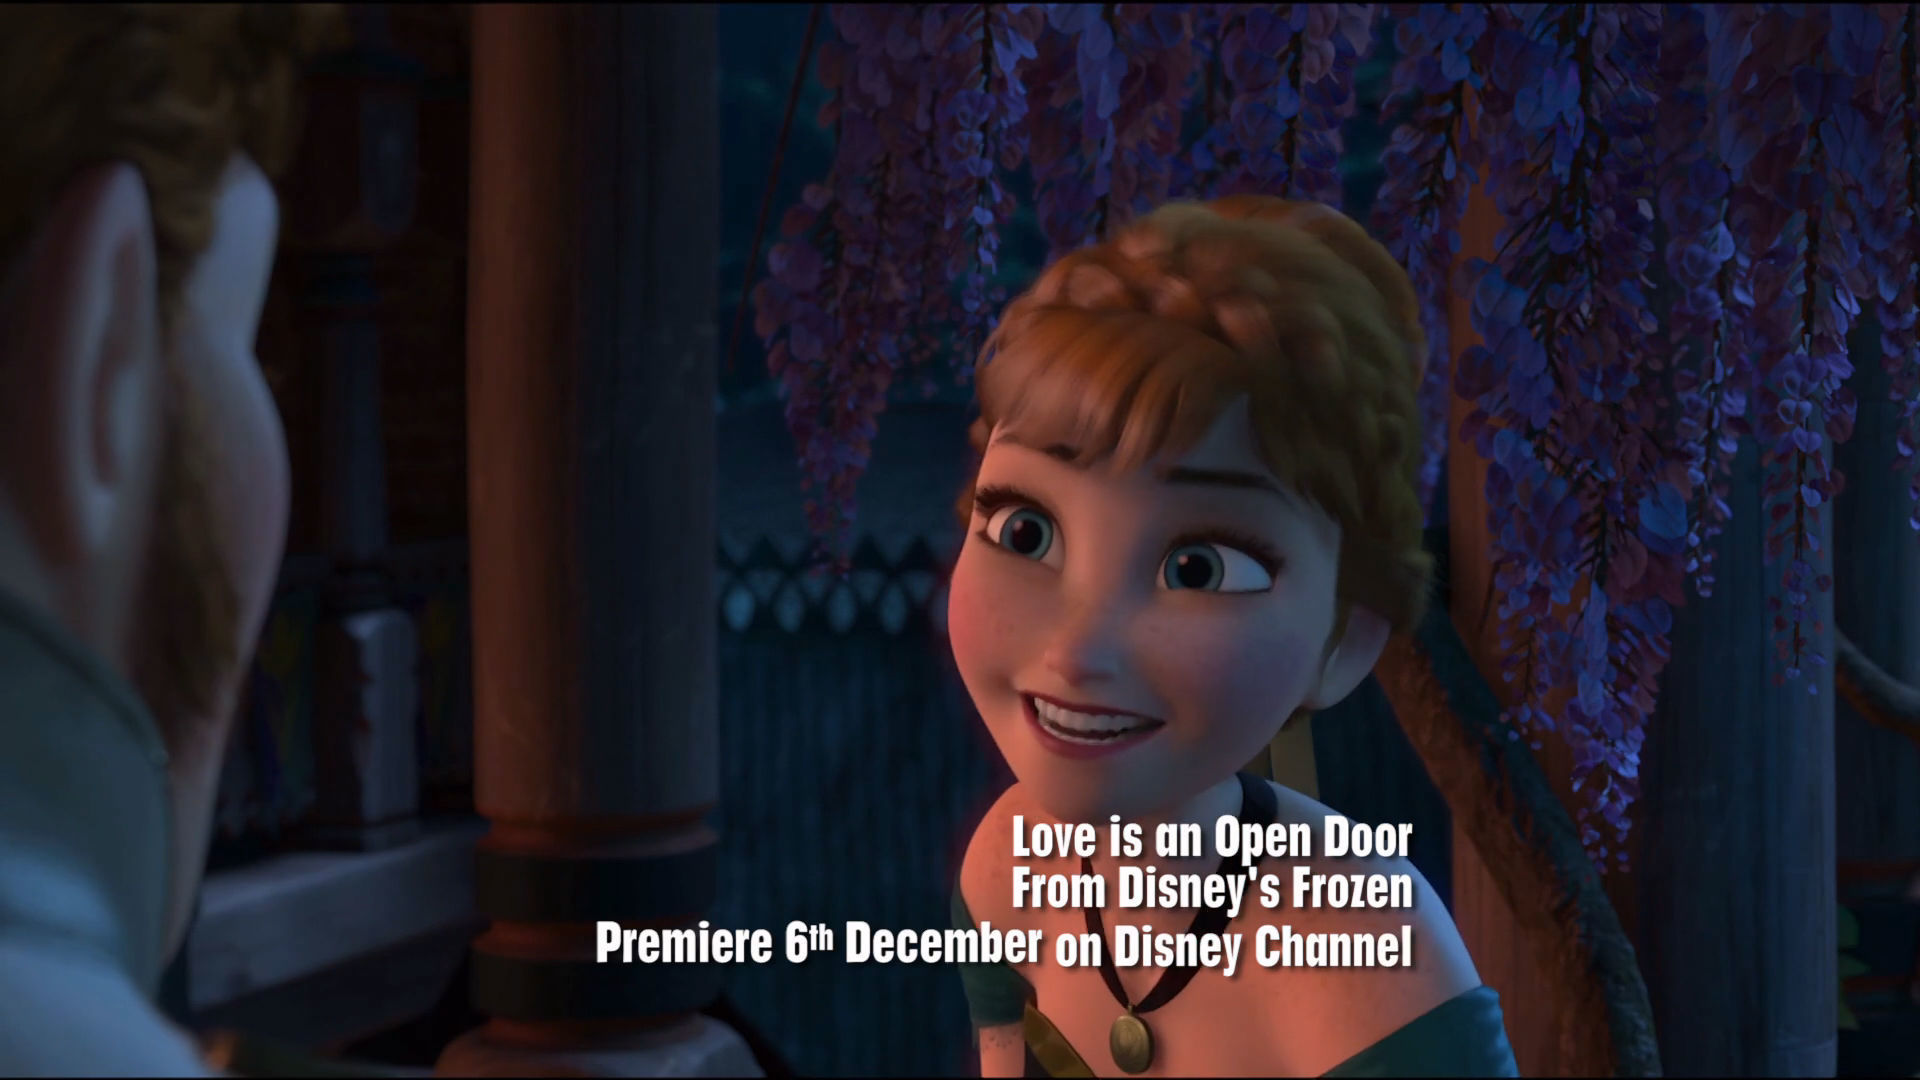 Love is an Open Door | Disney's Frozen